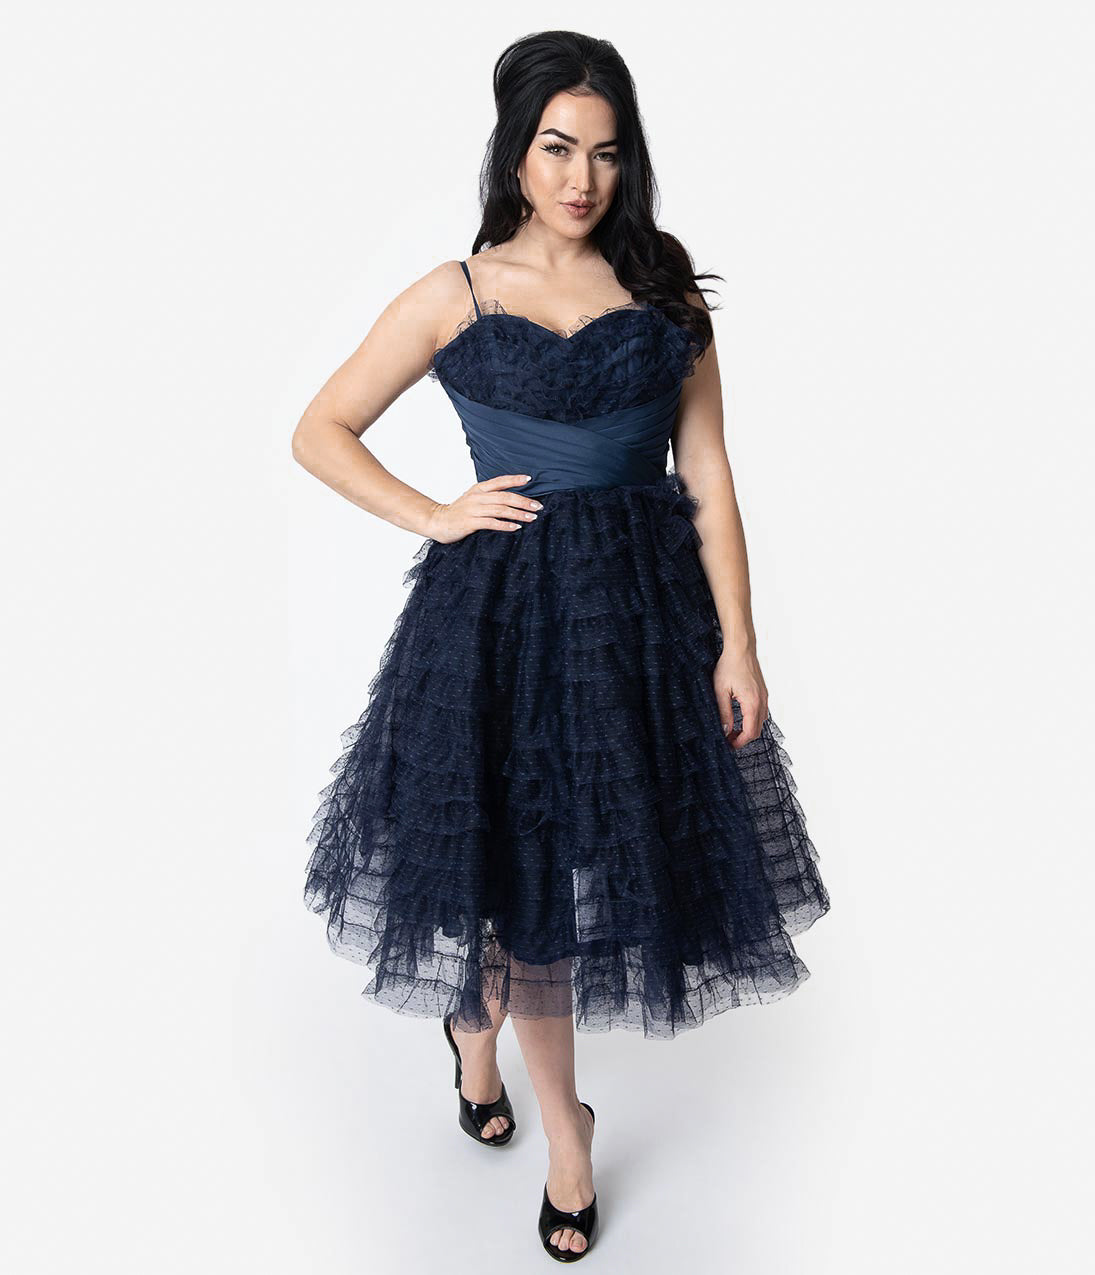 1950s Formal Dresses & Evening Gowns to Buy Unique Vintage 1950S Navy Ruffled Tulle Sweetheart Cupcake Swing Dress $128.00 AT vintagedancer.com